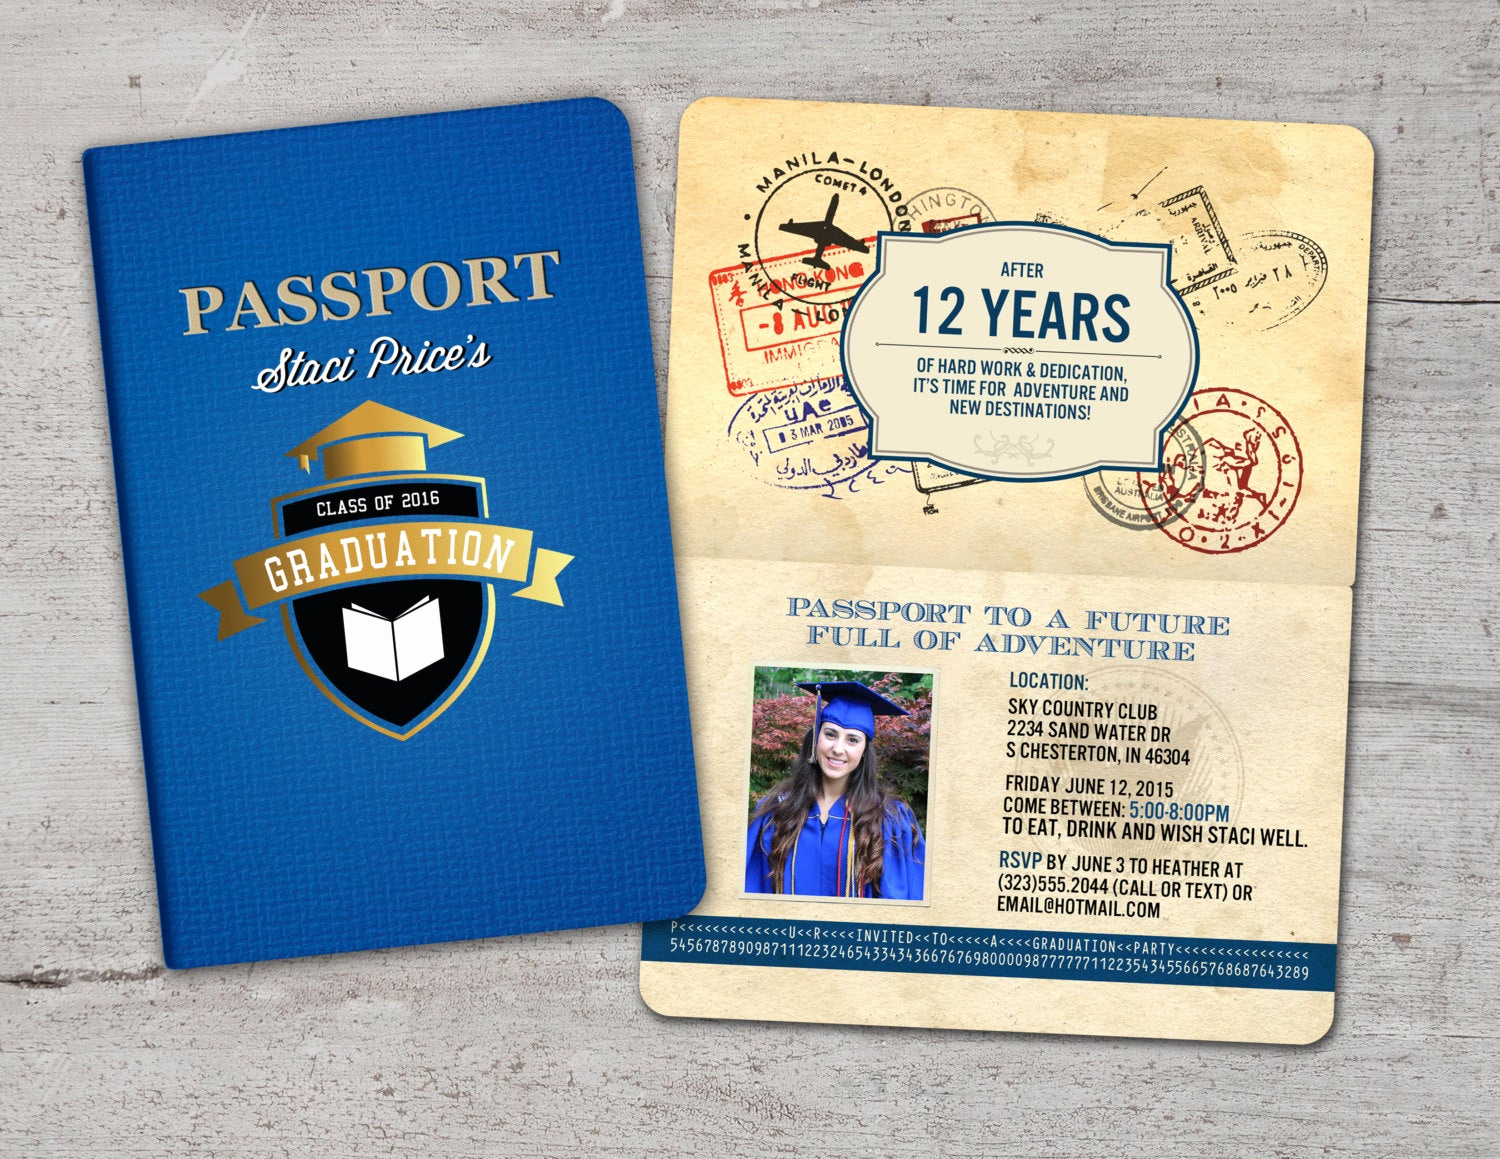 Bon Voyage Party Invitation Inspirational Graduation Party Invitation Bon Voyage Travel Passport